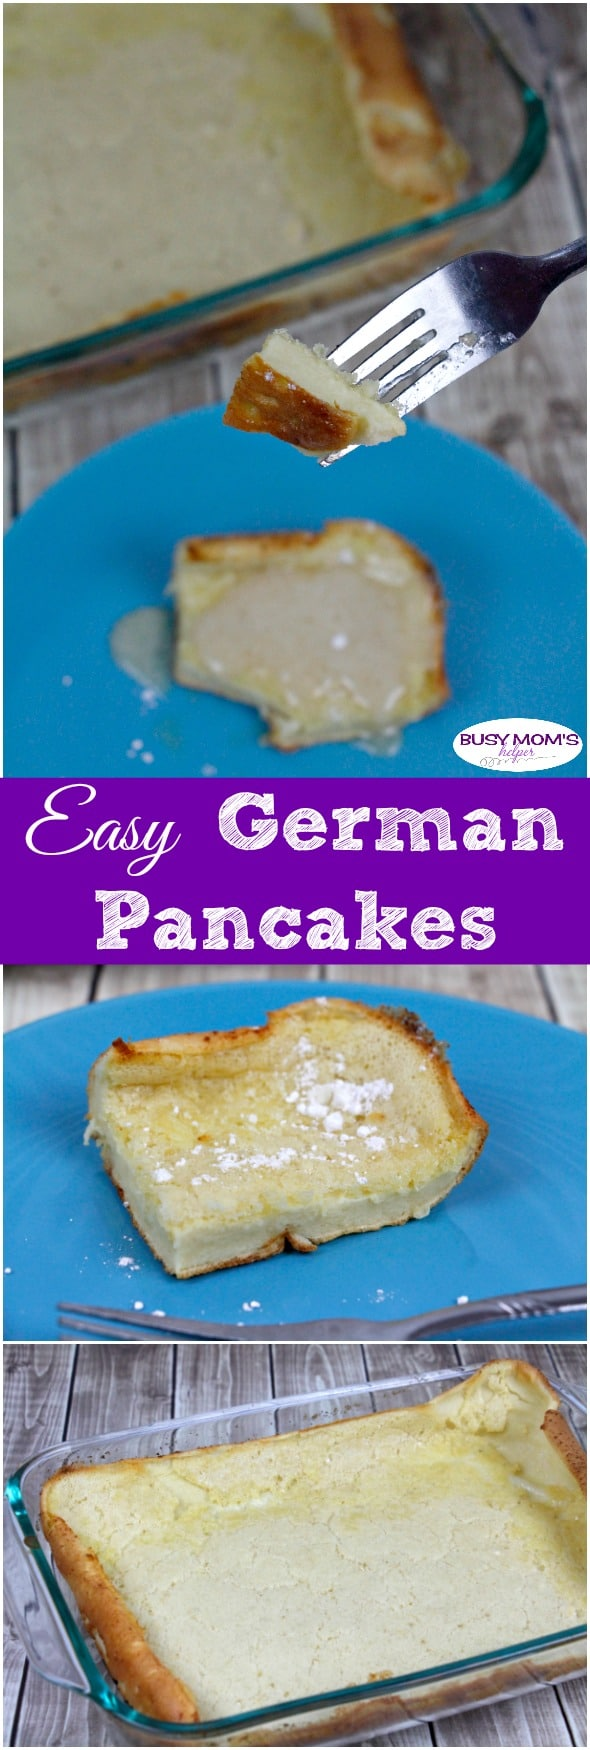 Easy German Pancakes #recipe #food #breakfast #pancakes #germanpancakes #easyrecipe #easymeal #easybreakfast #breakfastrecipe